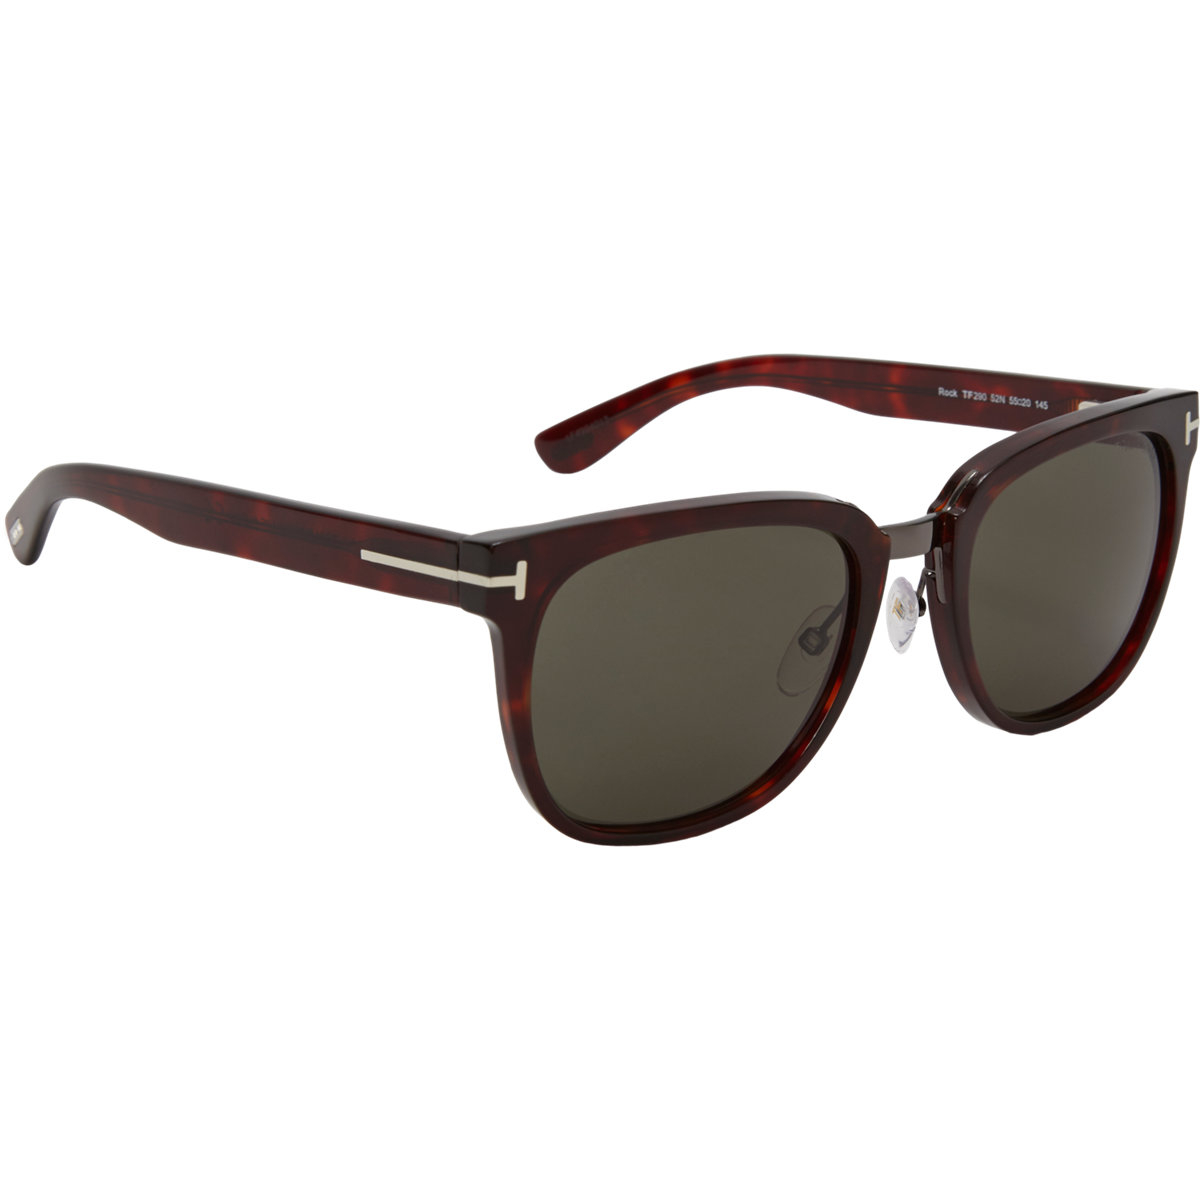 tom ford brown men s rock sunglasses 405 from barneys new york us buy. Cars Review. Best American Auto & Cars Review